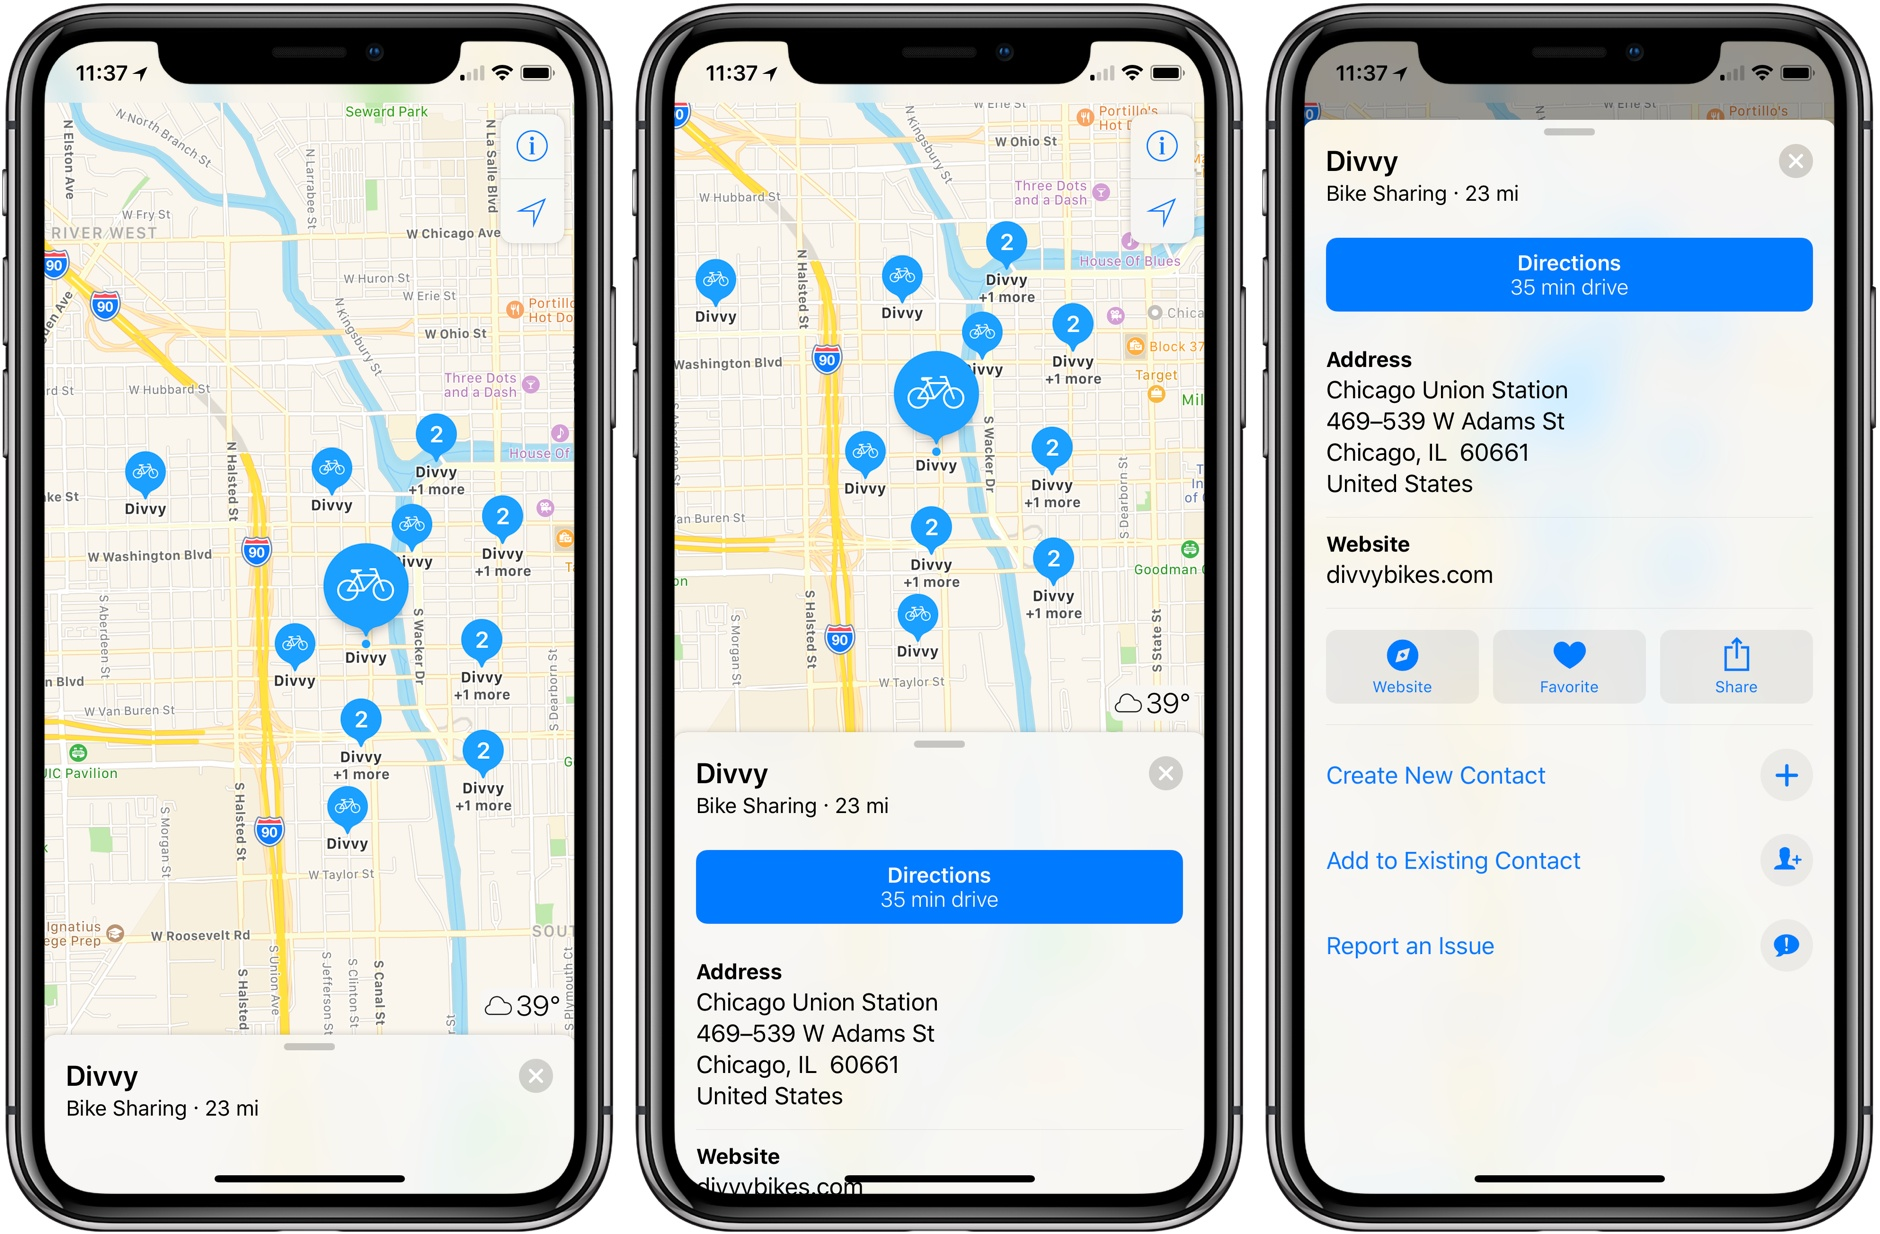 Apple Maps shows you the nearest bike-sharing stations